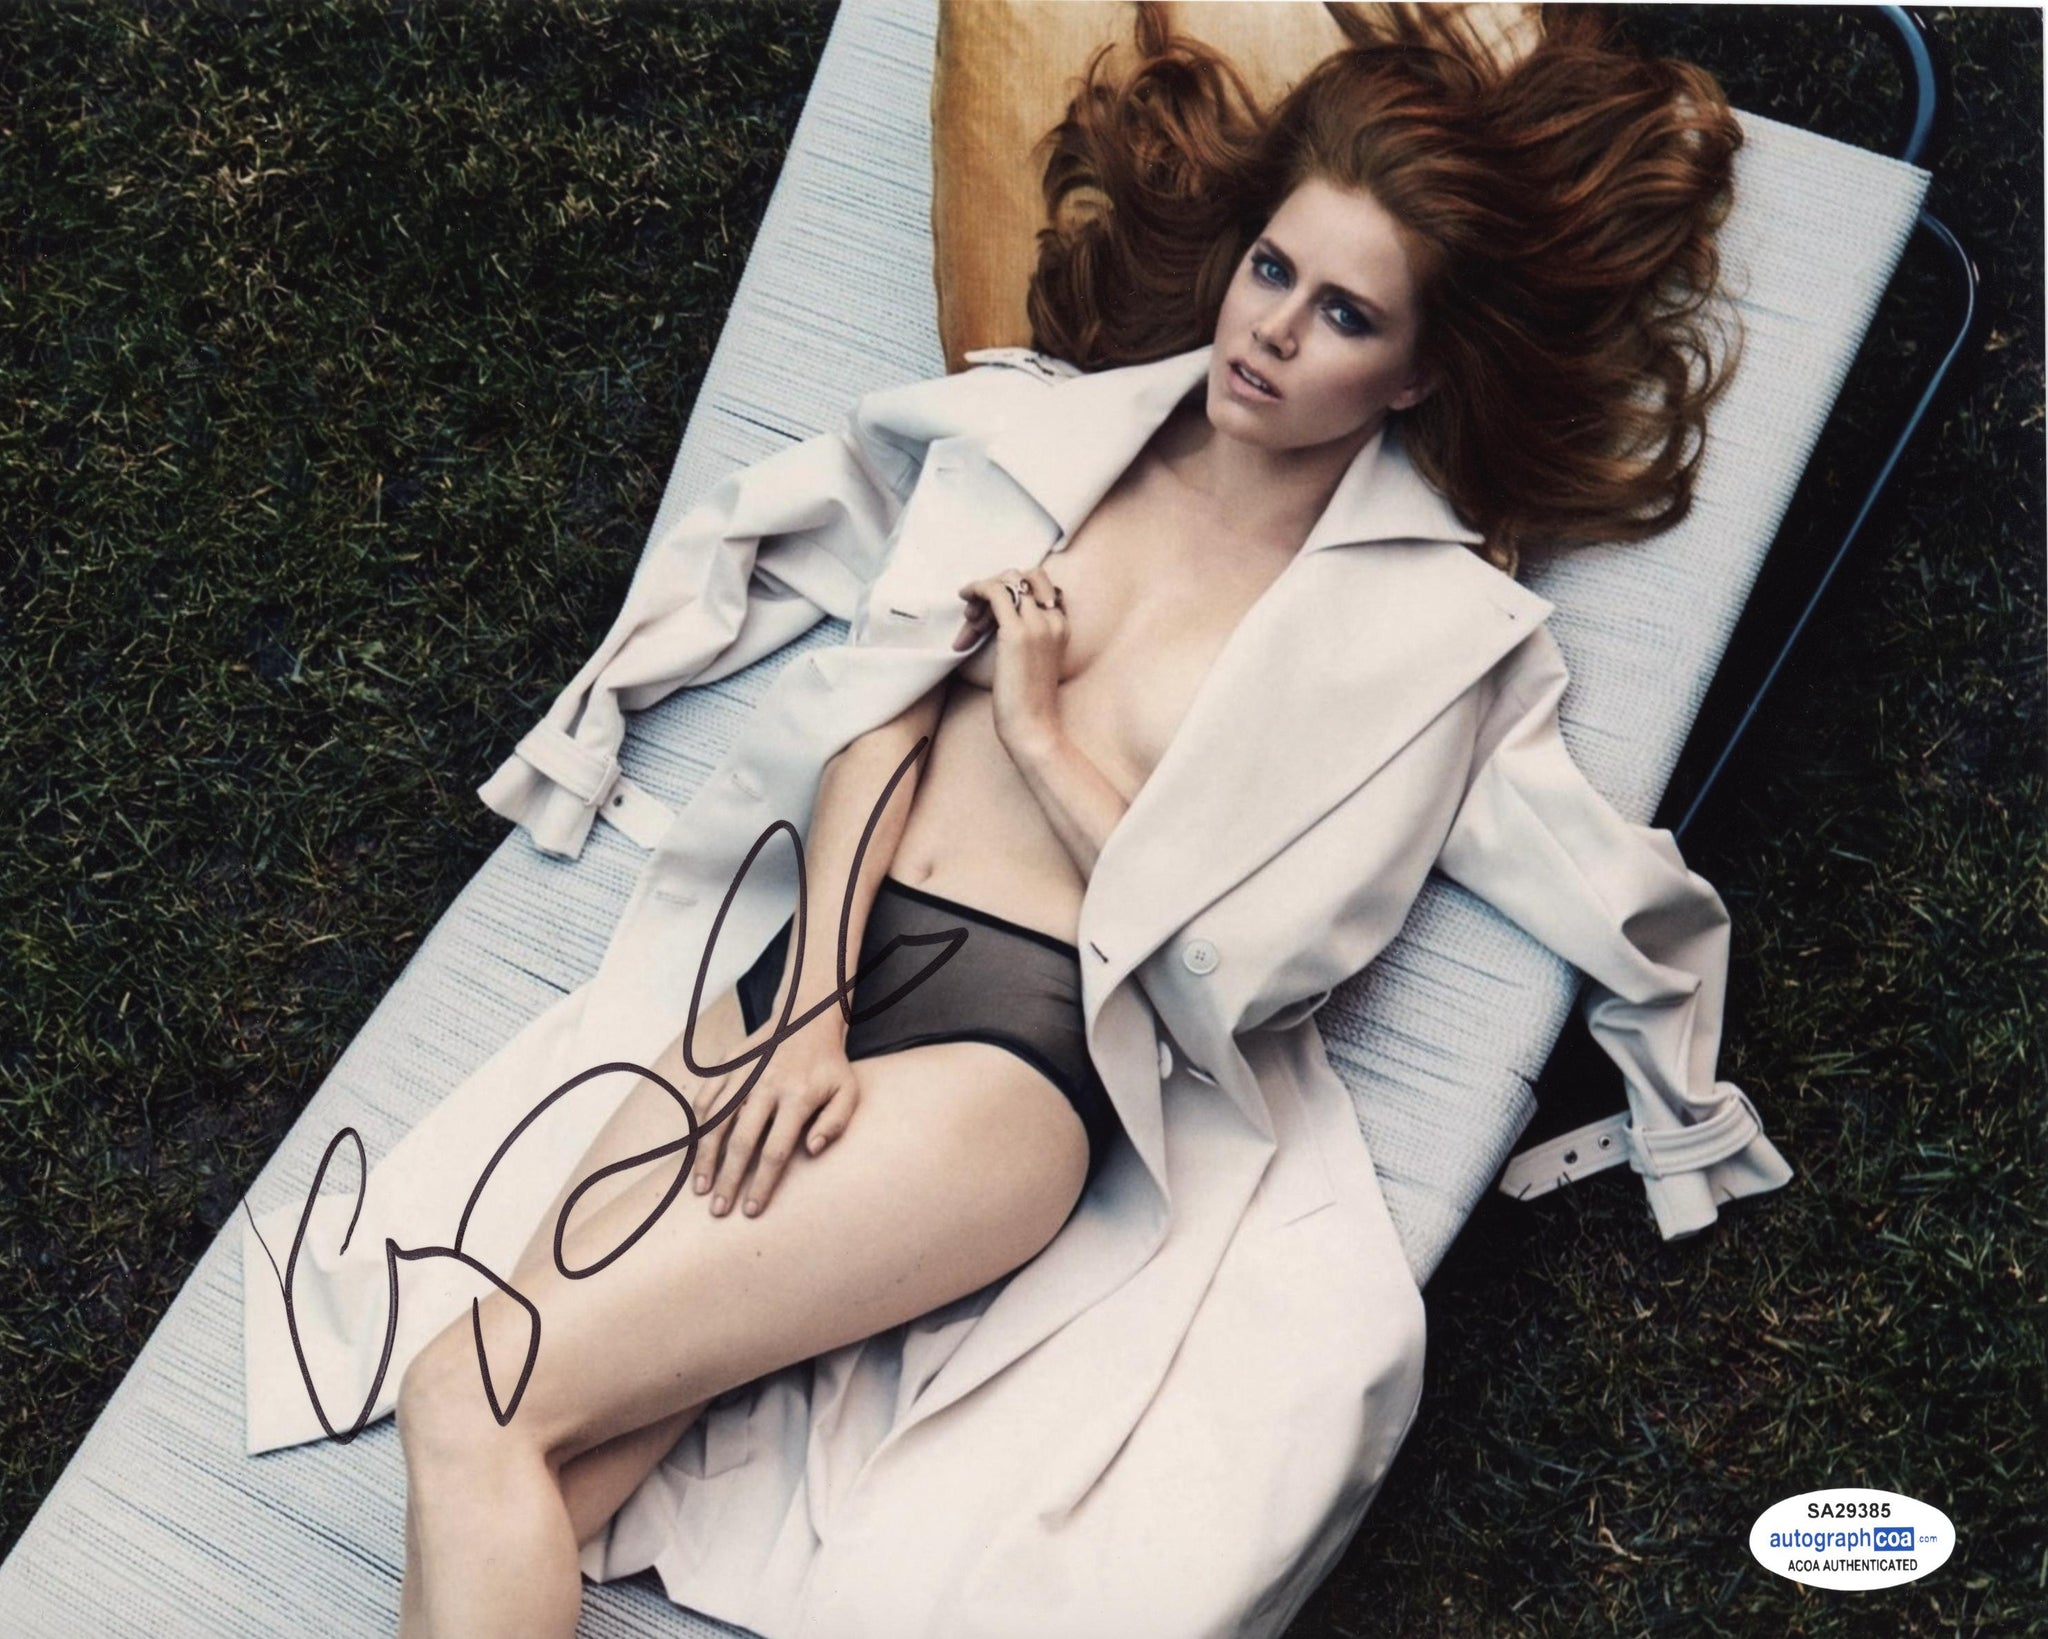 Amy Adams Sexy Signed Autograph 8x10 Photo ACOA #5 - Outlaw Hobbies Authentic Autographs